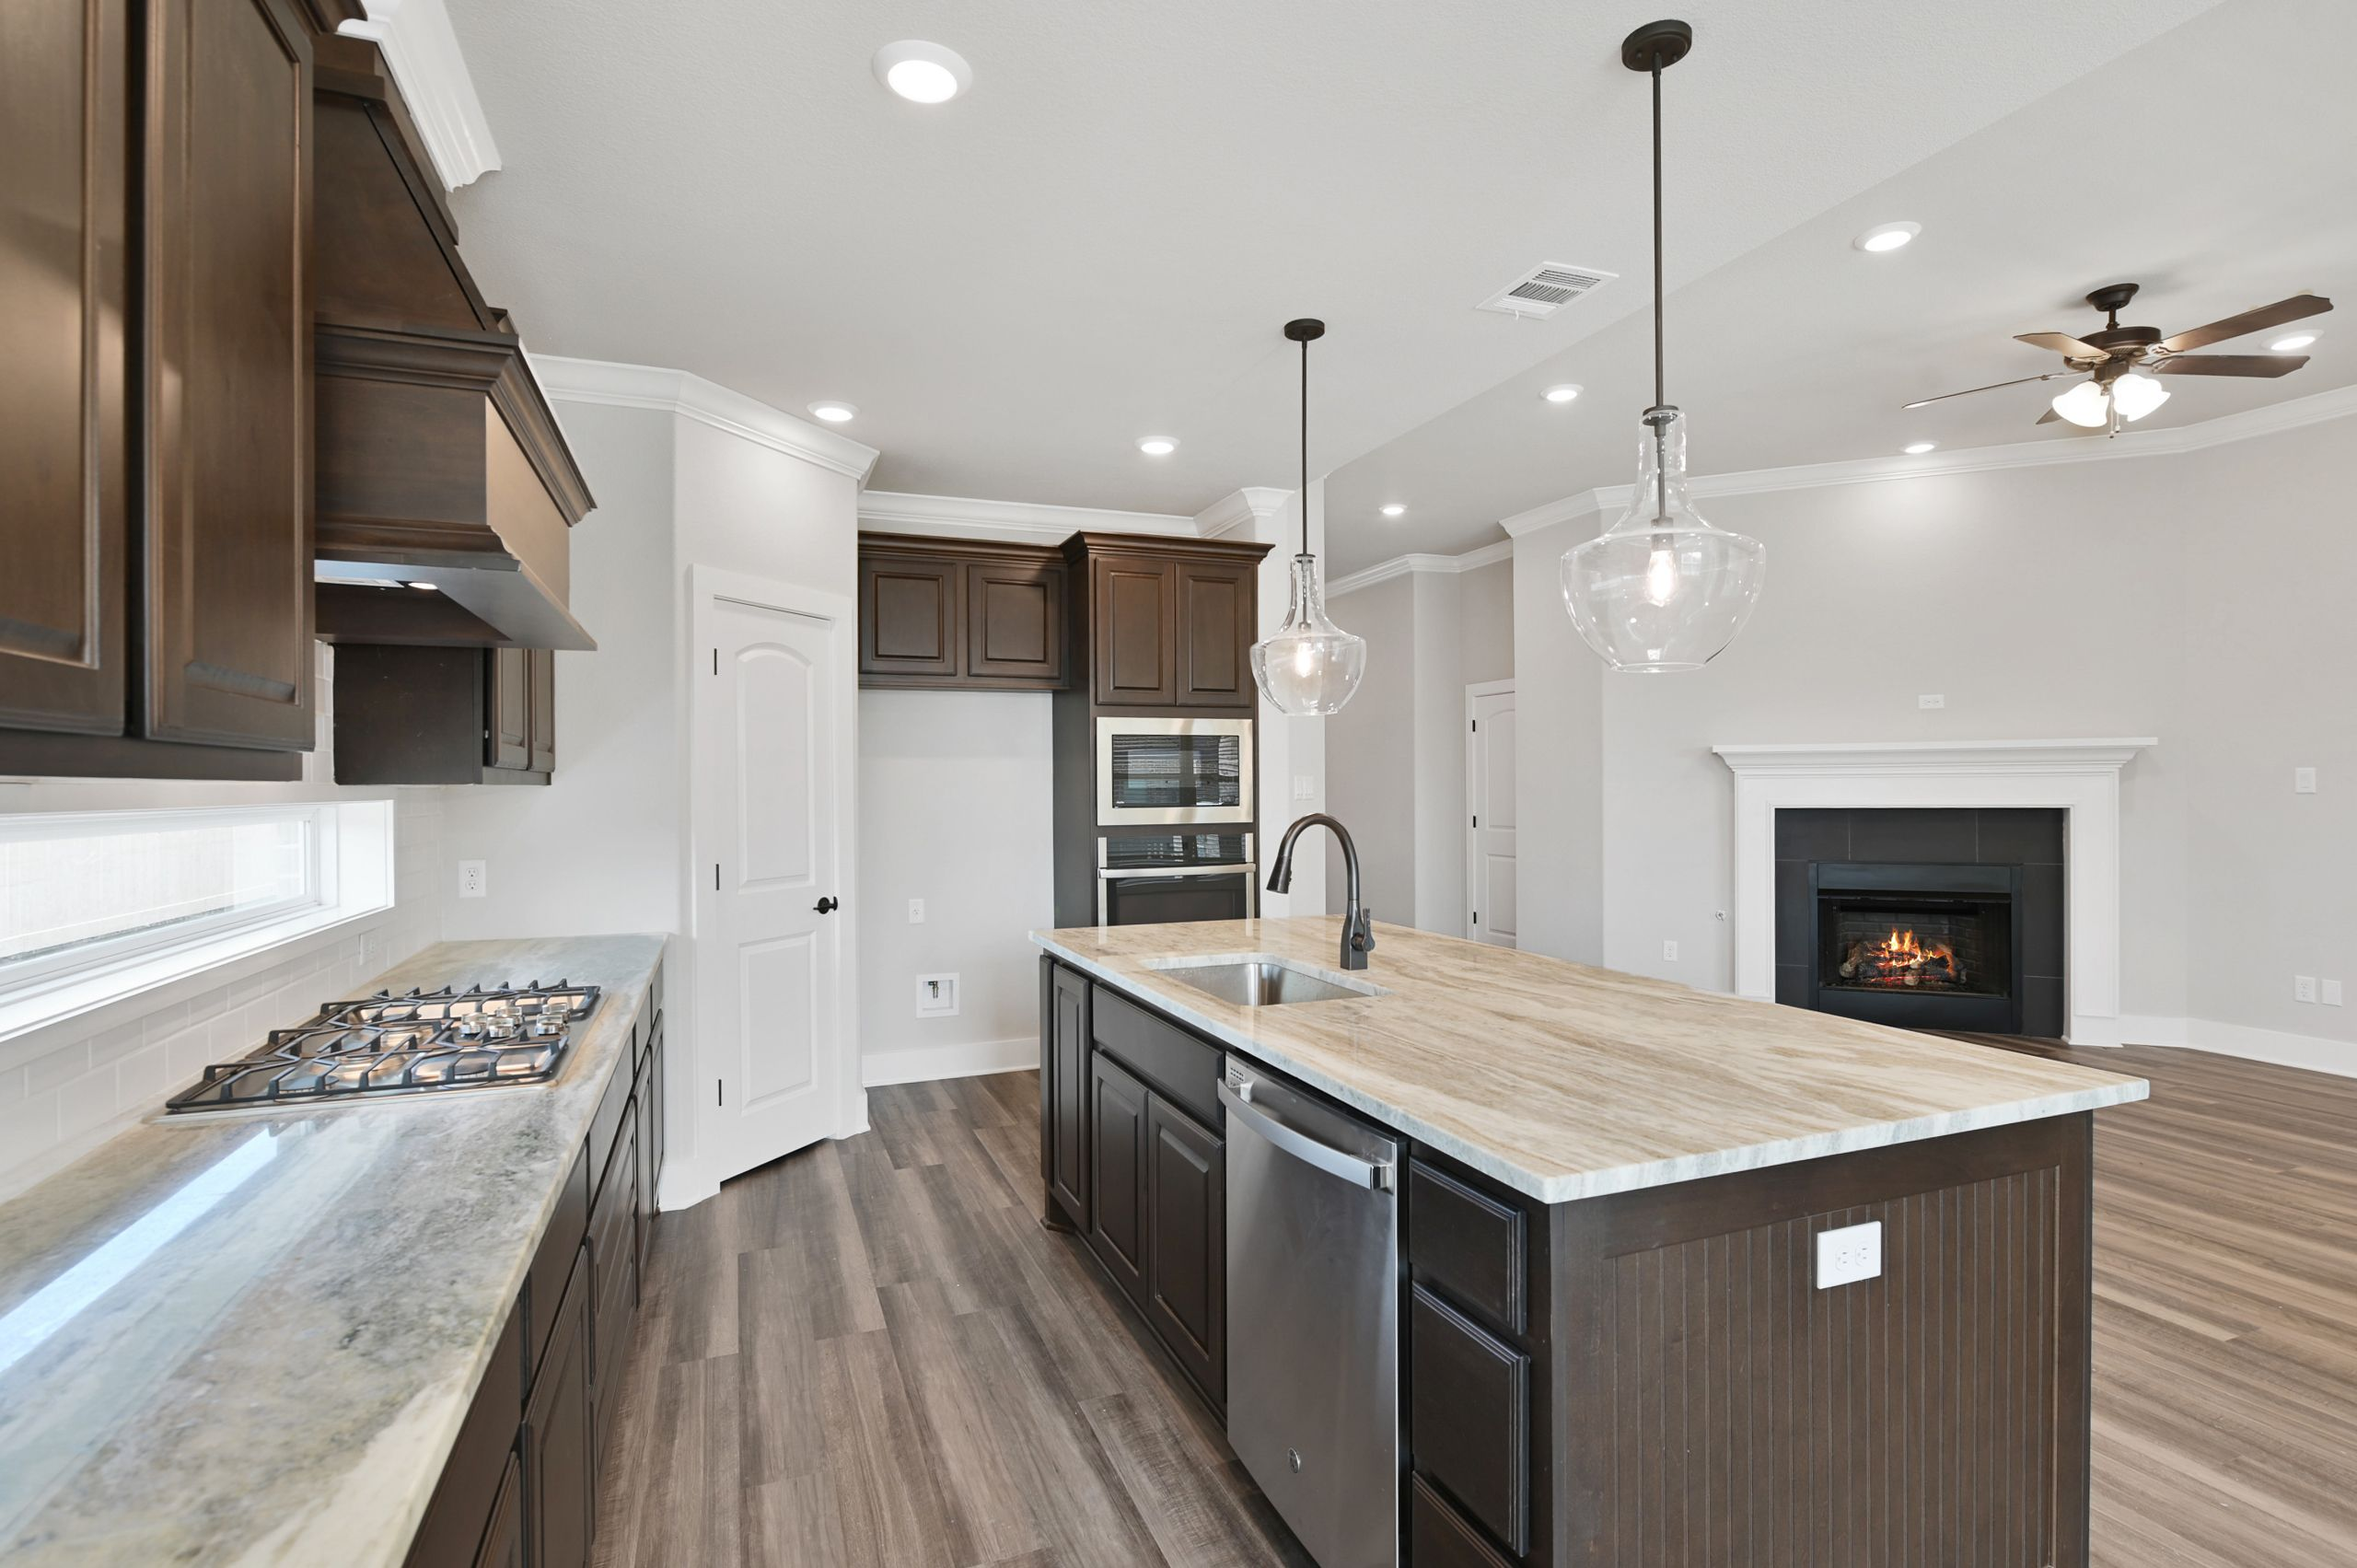 Kitchen featured in the Jackson By Blackstone Homes in Bryan-College Station, TX